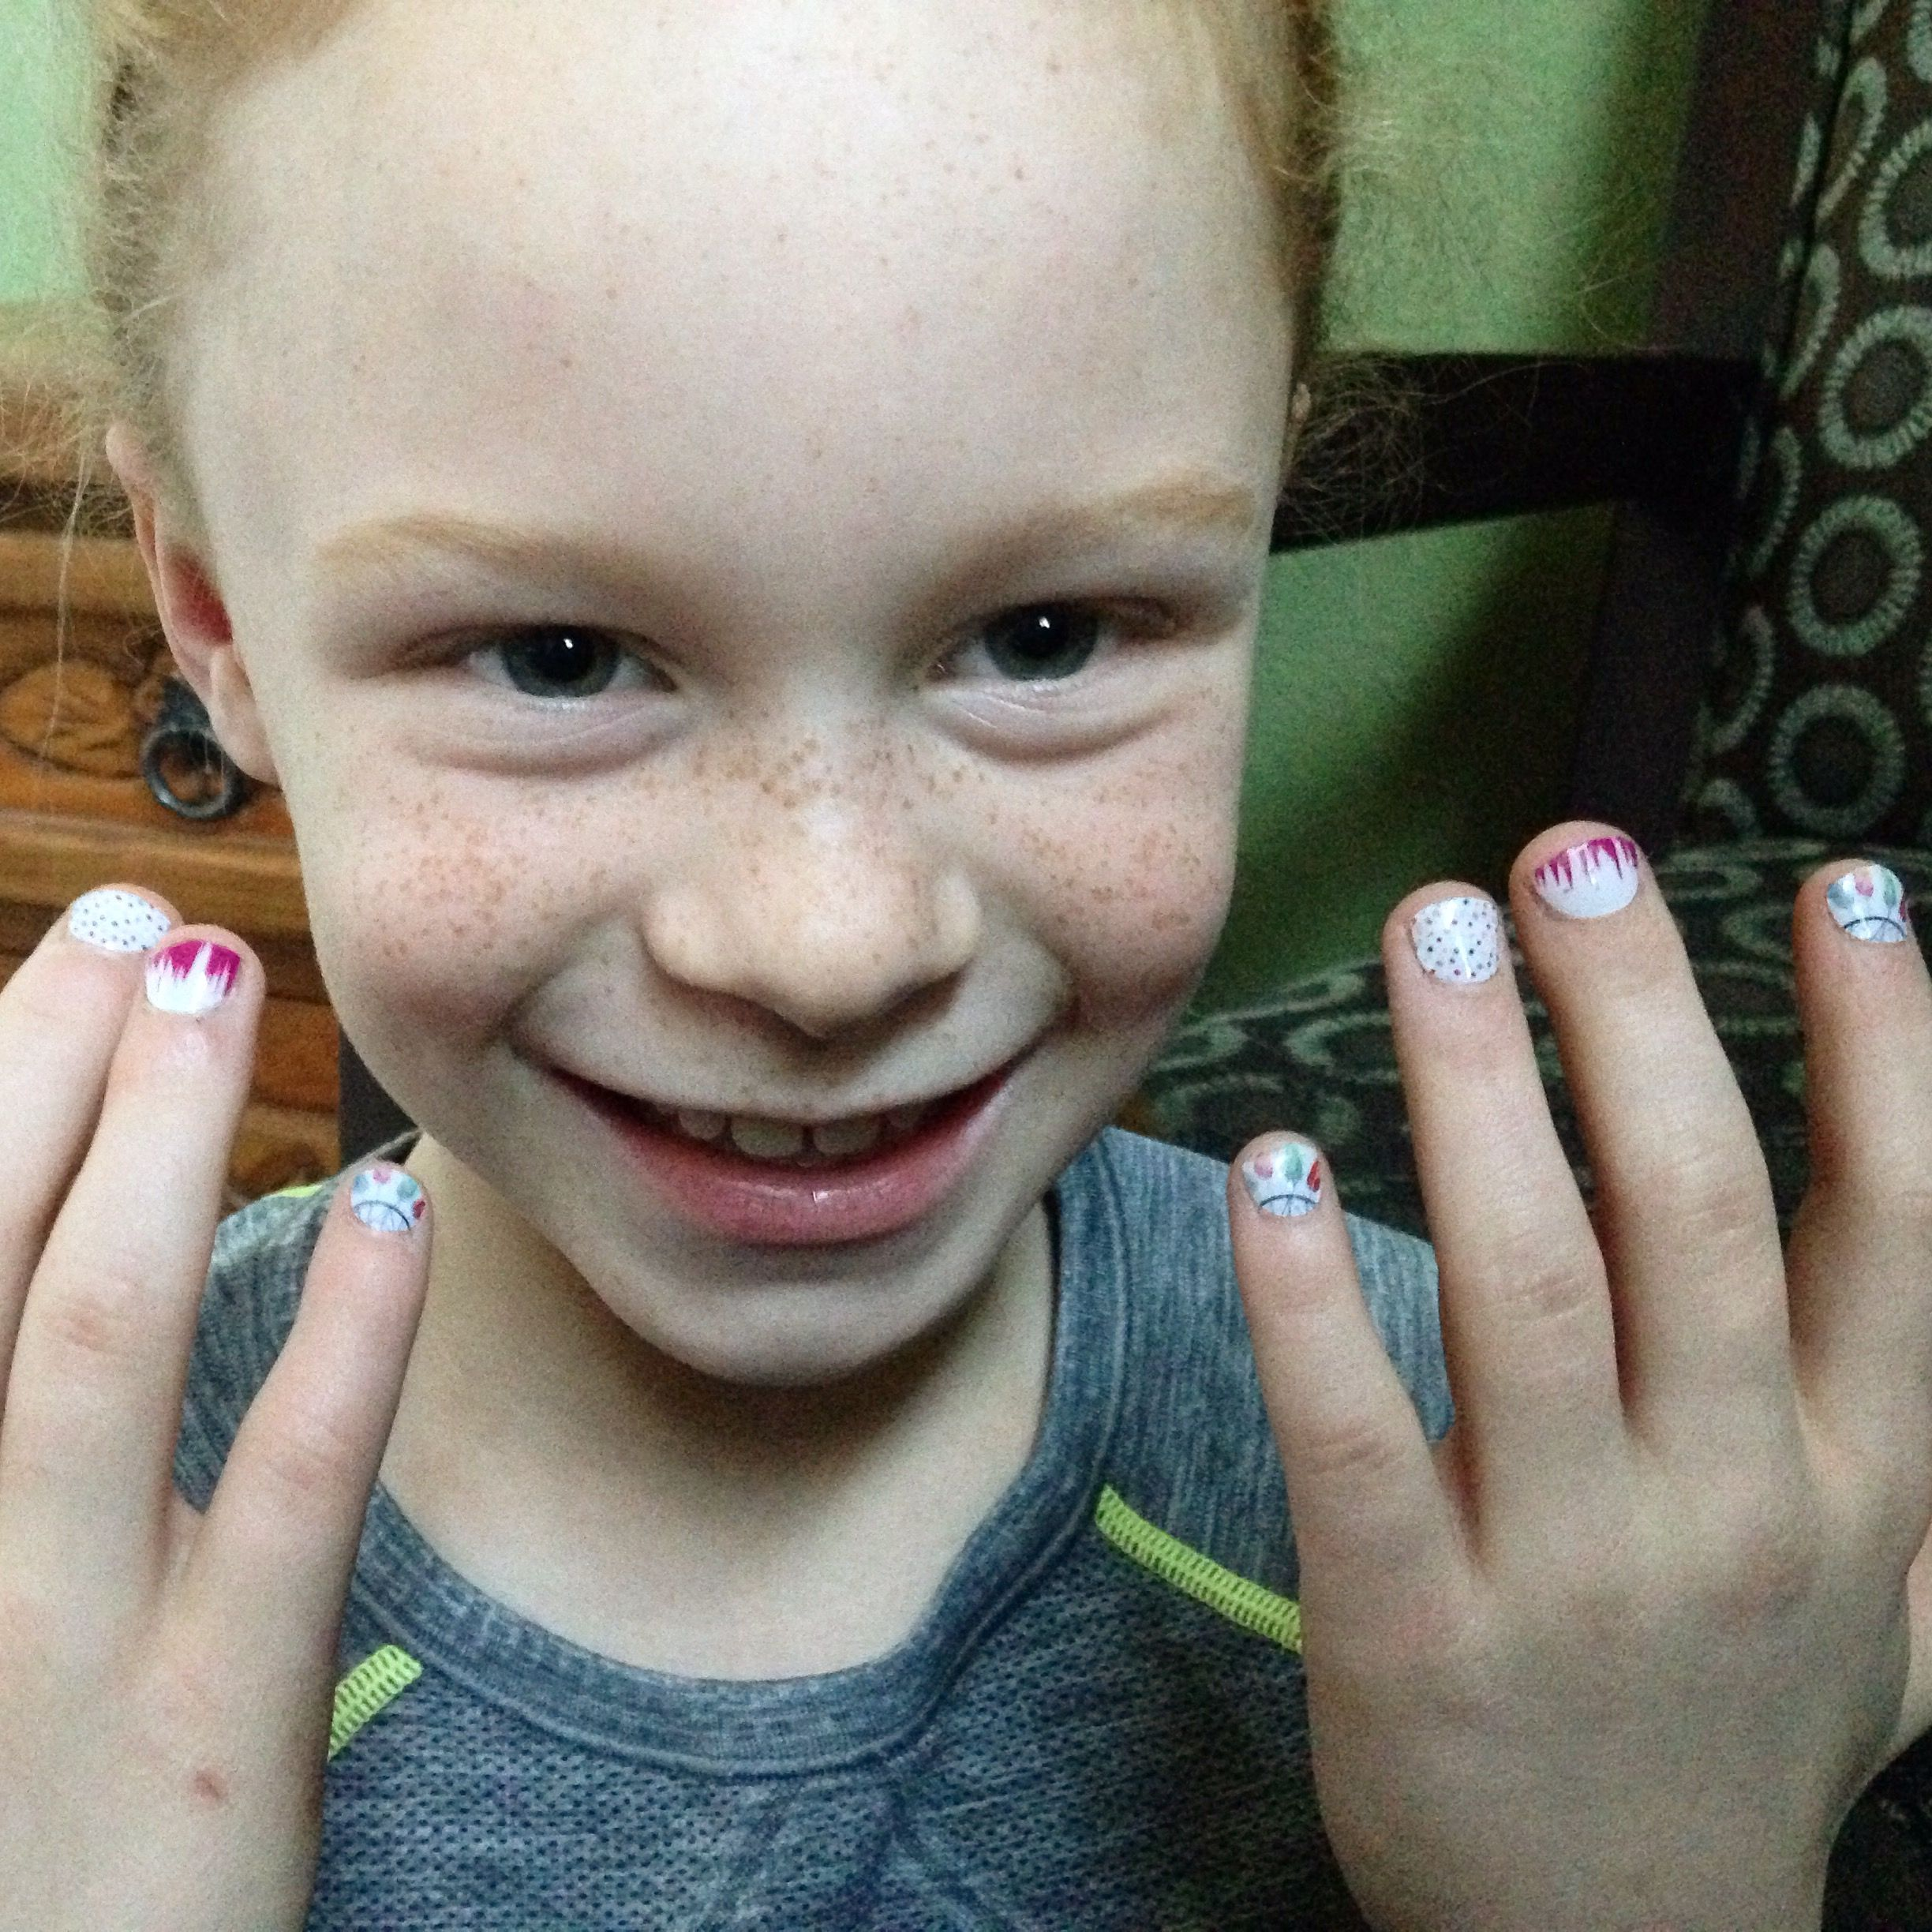 Jamberry nail wraps for little girls too! desireebrown.jamberrynails.net